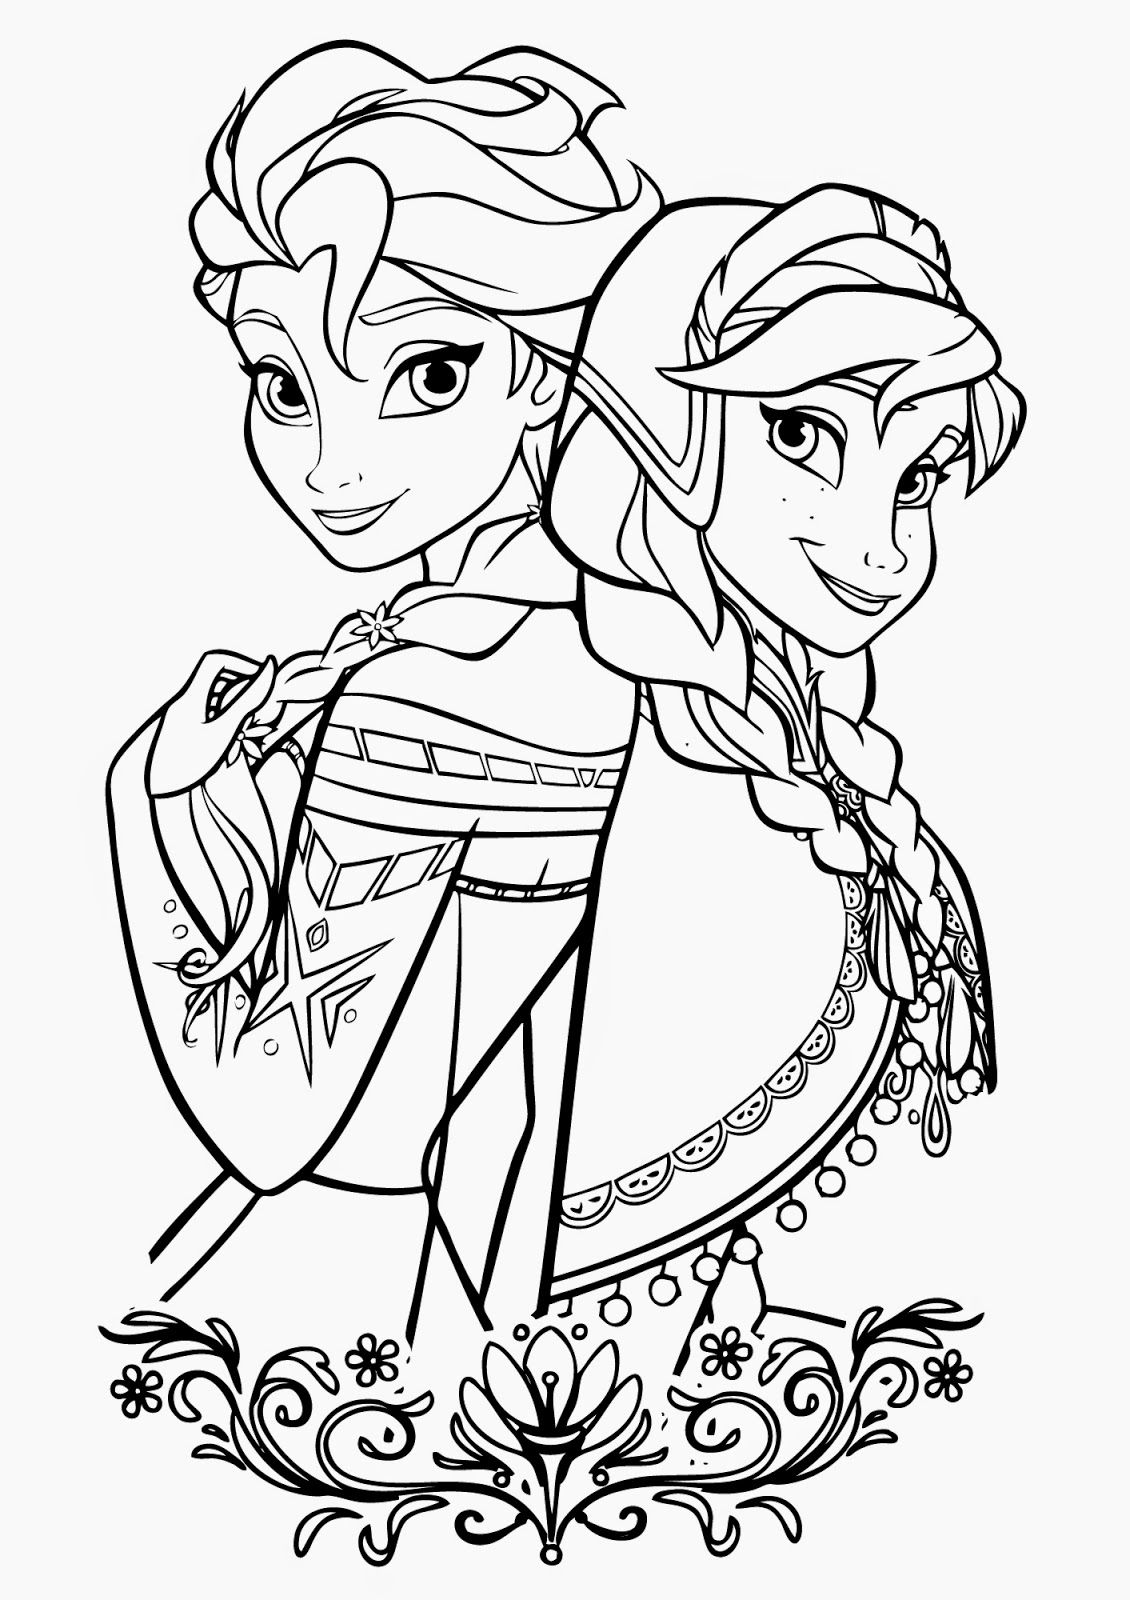 20 free disney printables crafts coloring creativity disney